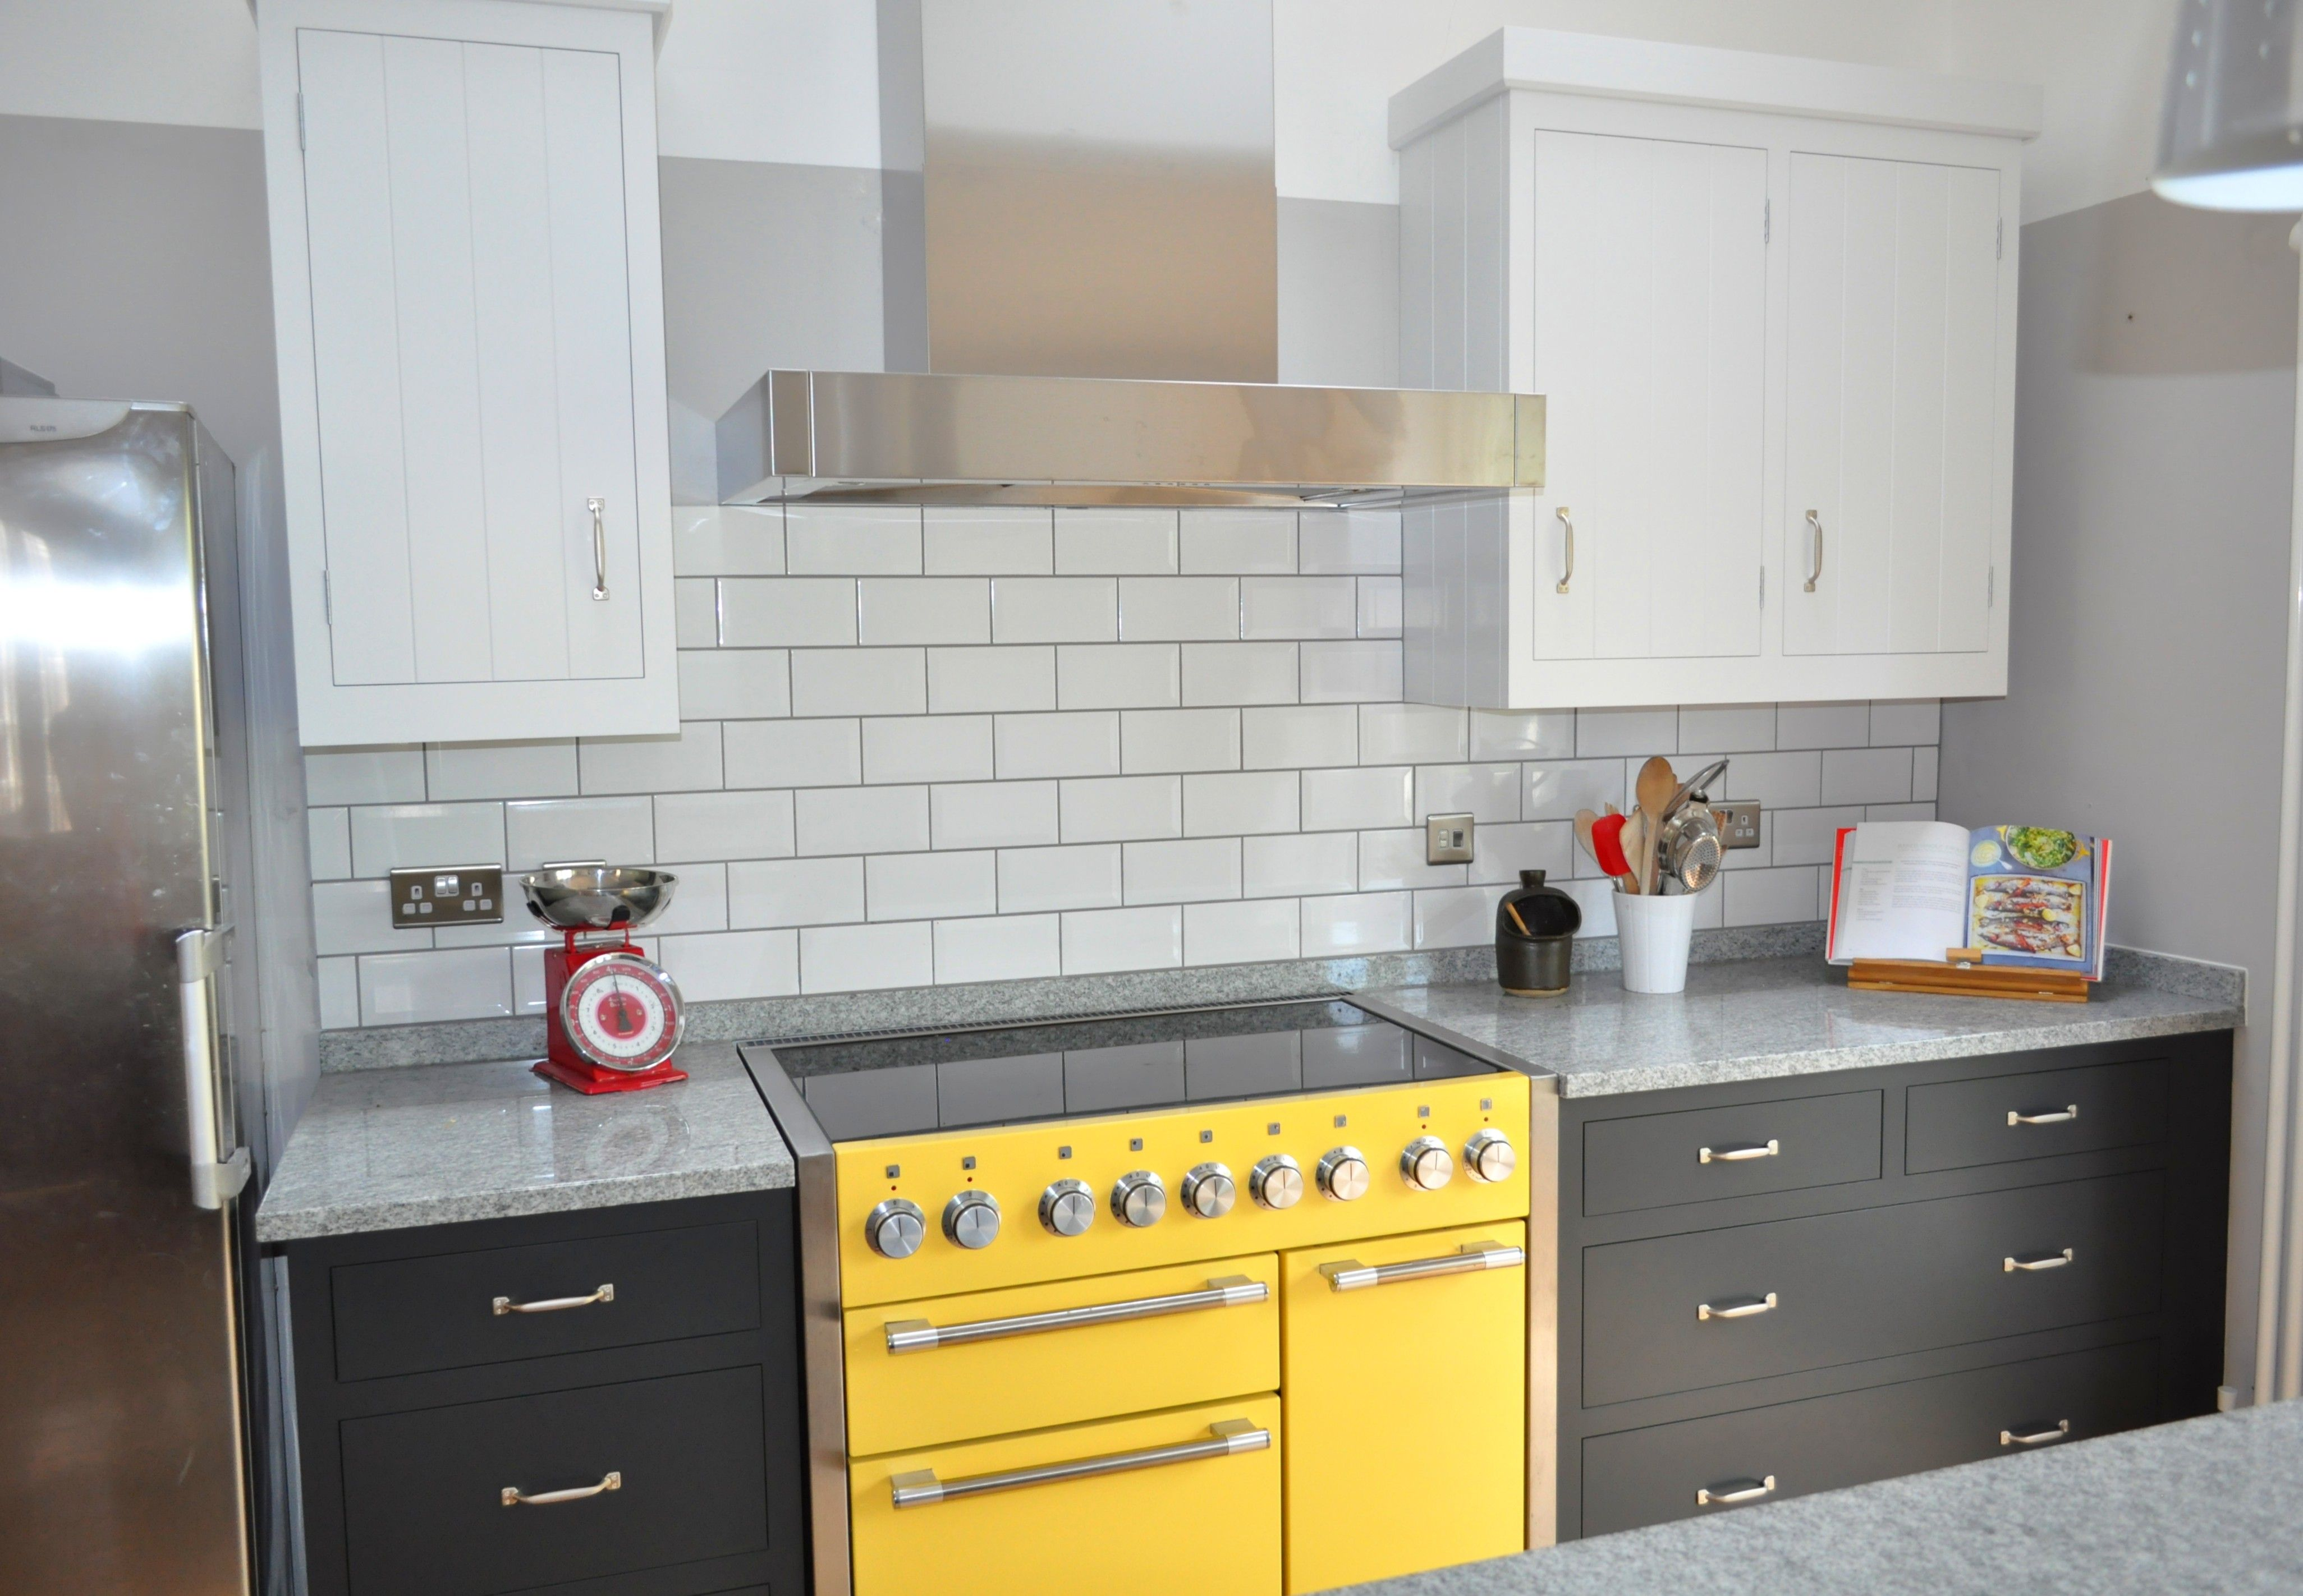 Scandi Style Bespoke Kitchen By Design Matters With Yellow Mercury Range  Oven